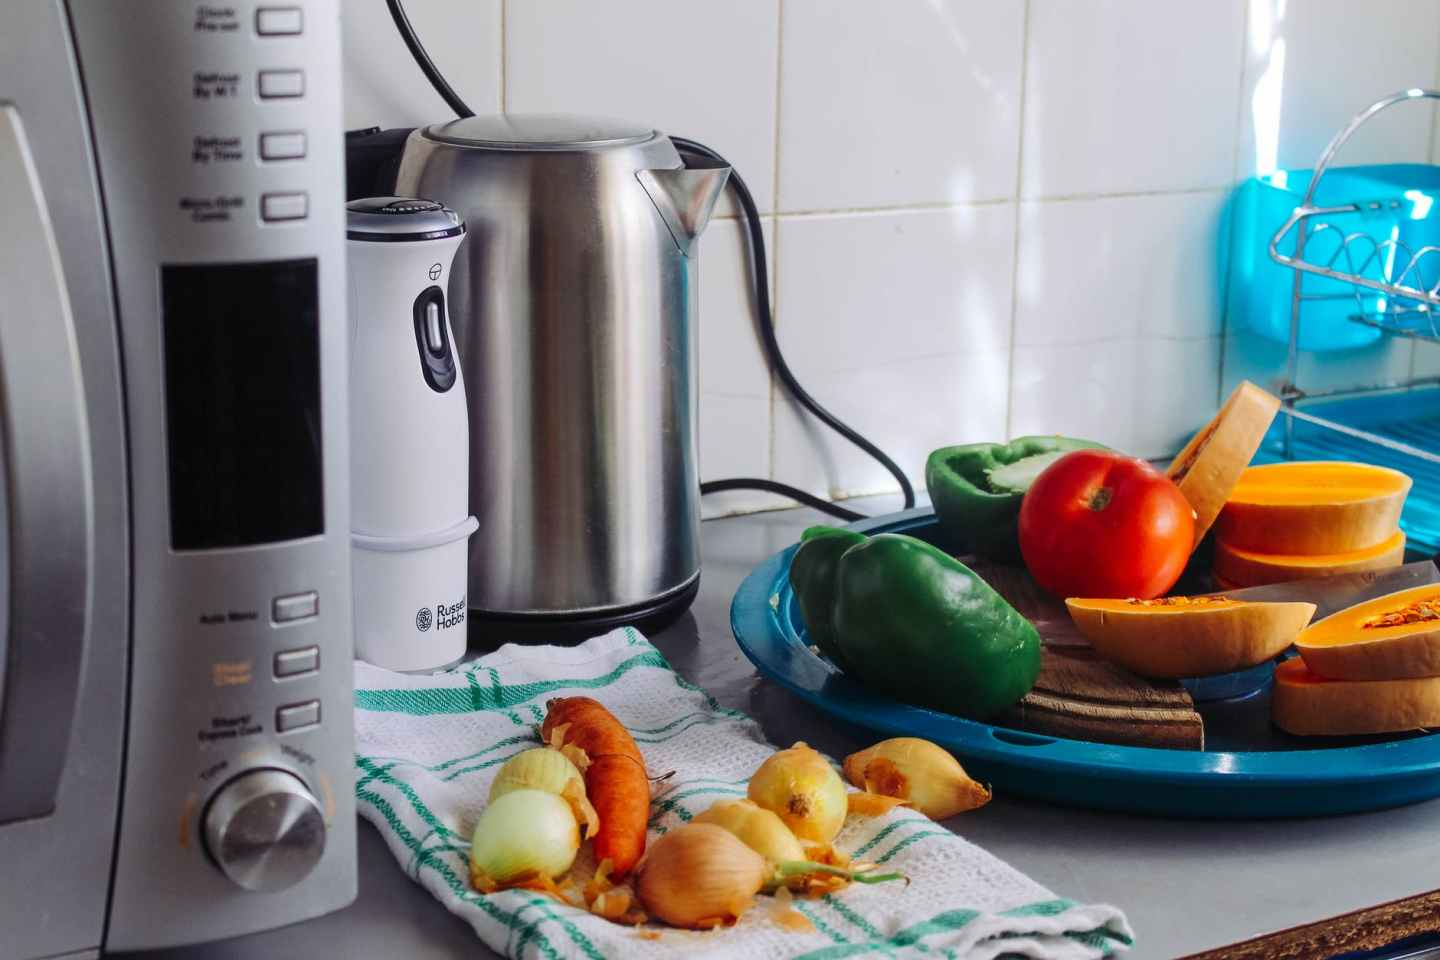 photo of vegetables beside gray electric kettle